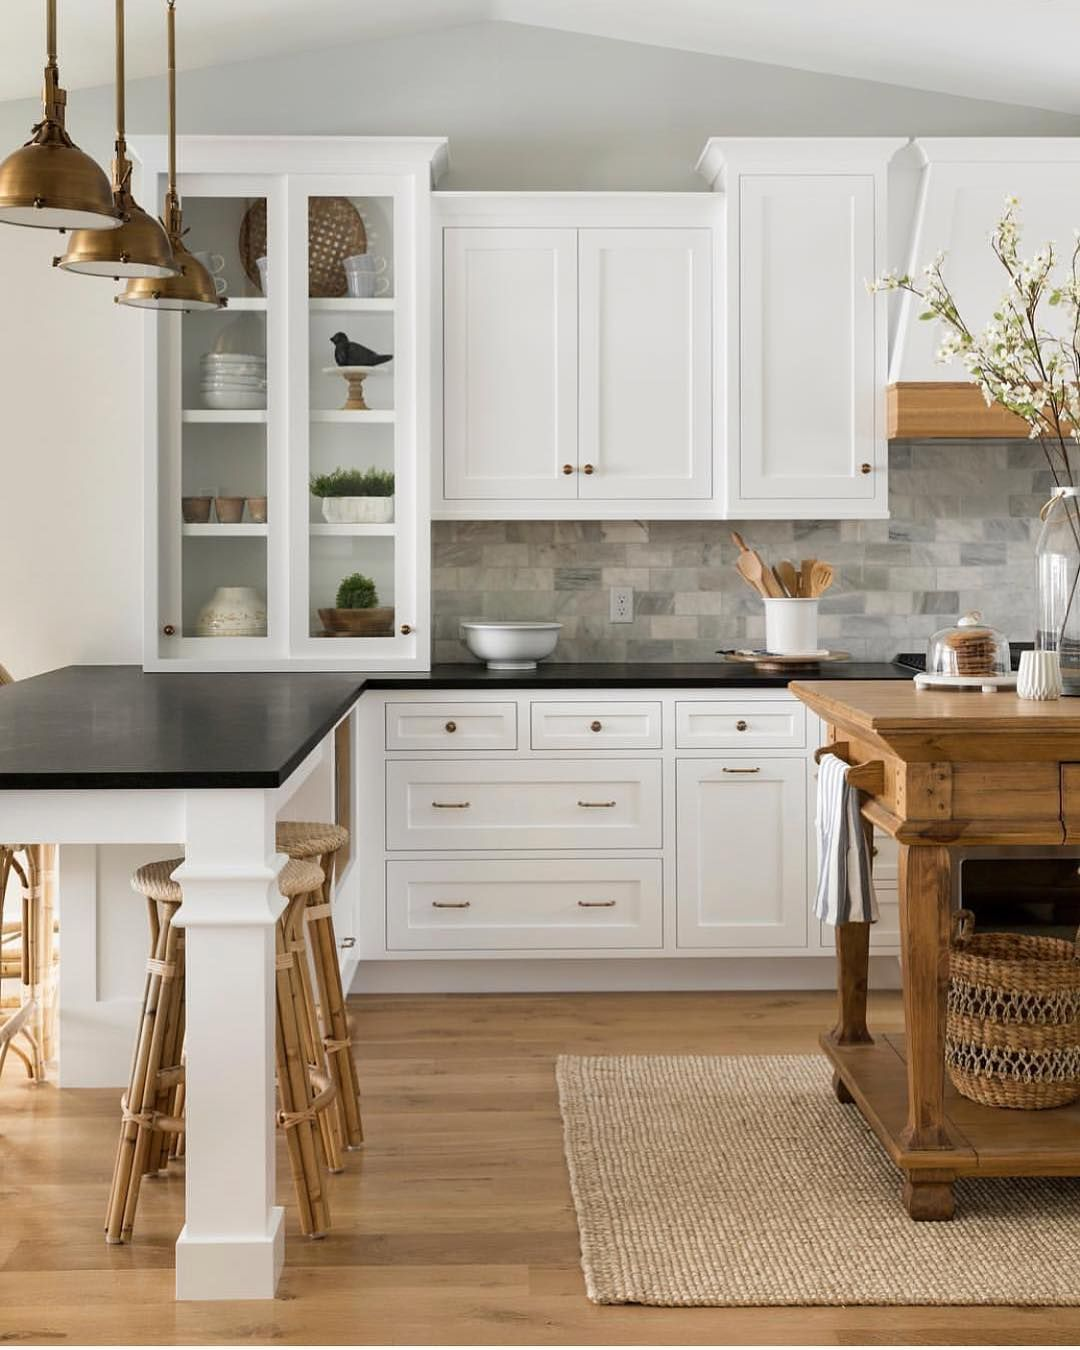 White Kitchen Cabinets For Sale: WHAT.A.KITCHEN! The White, The Wood, The Dark Counters